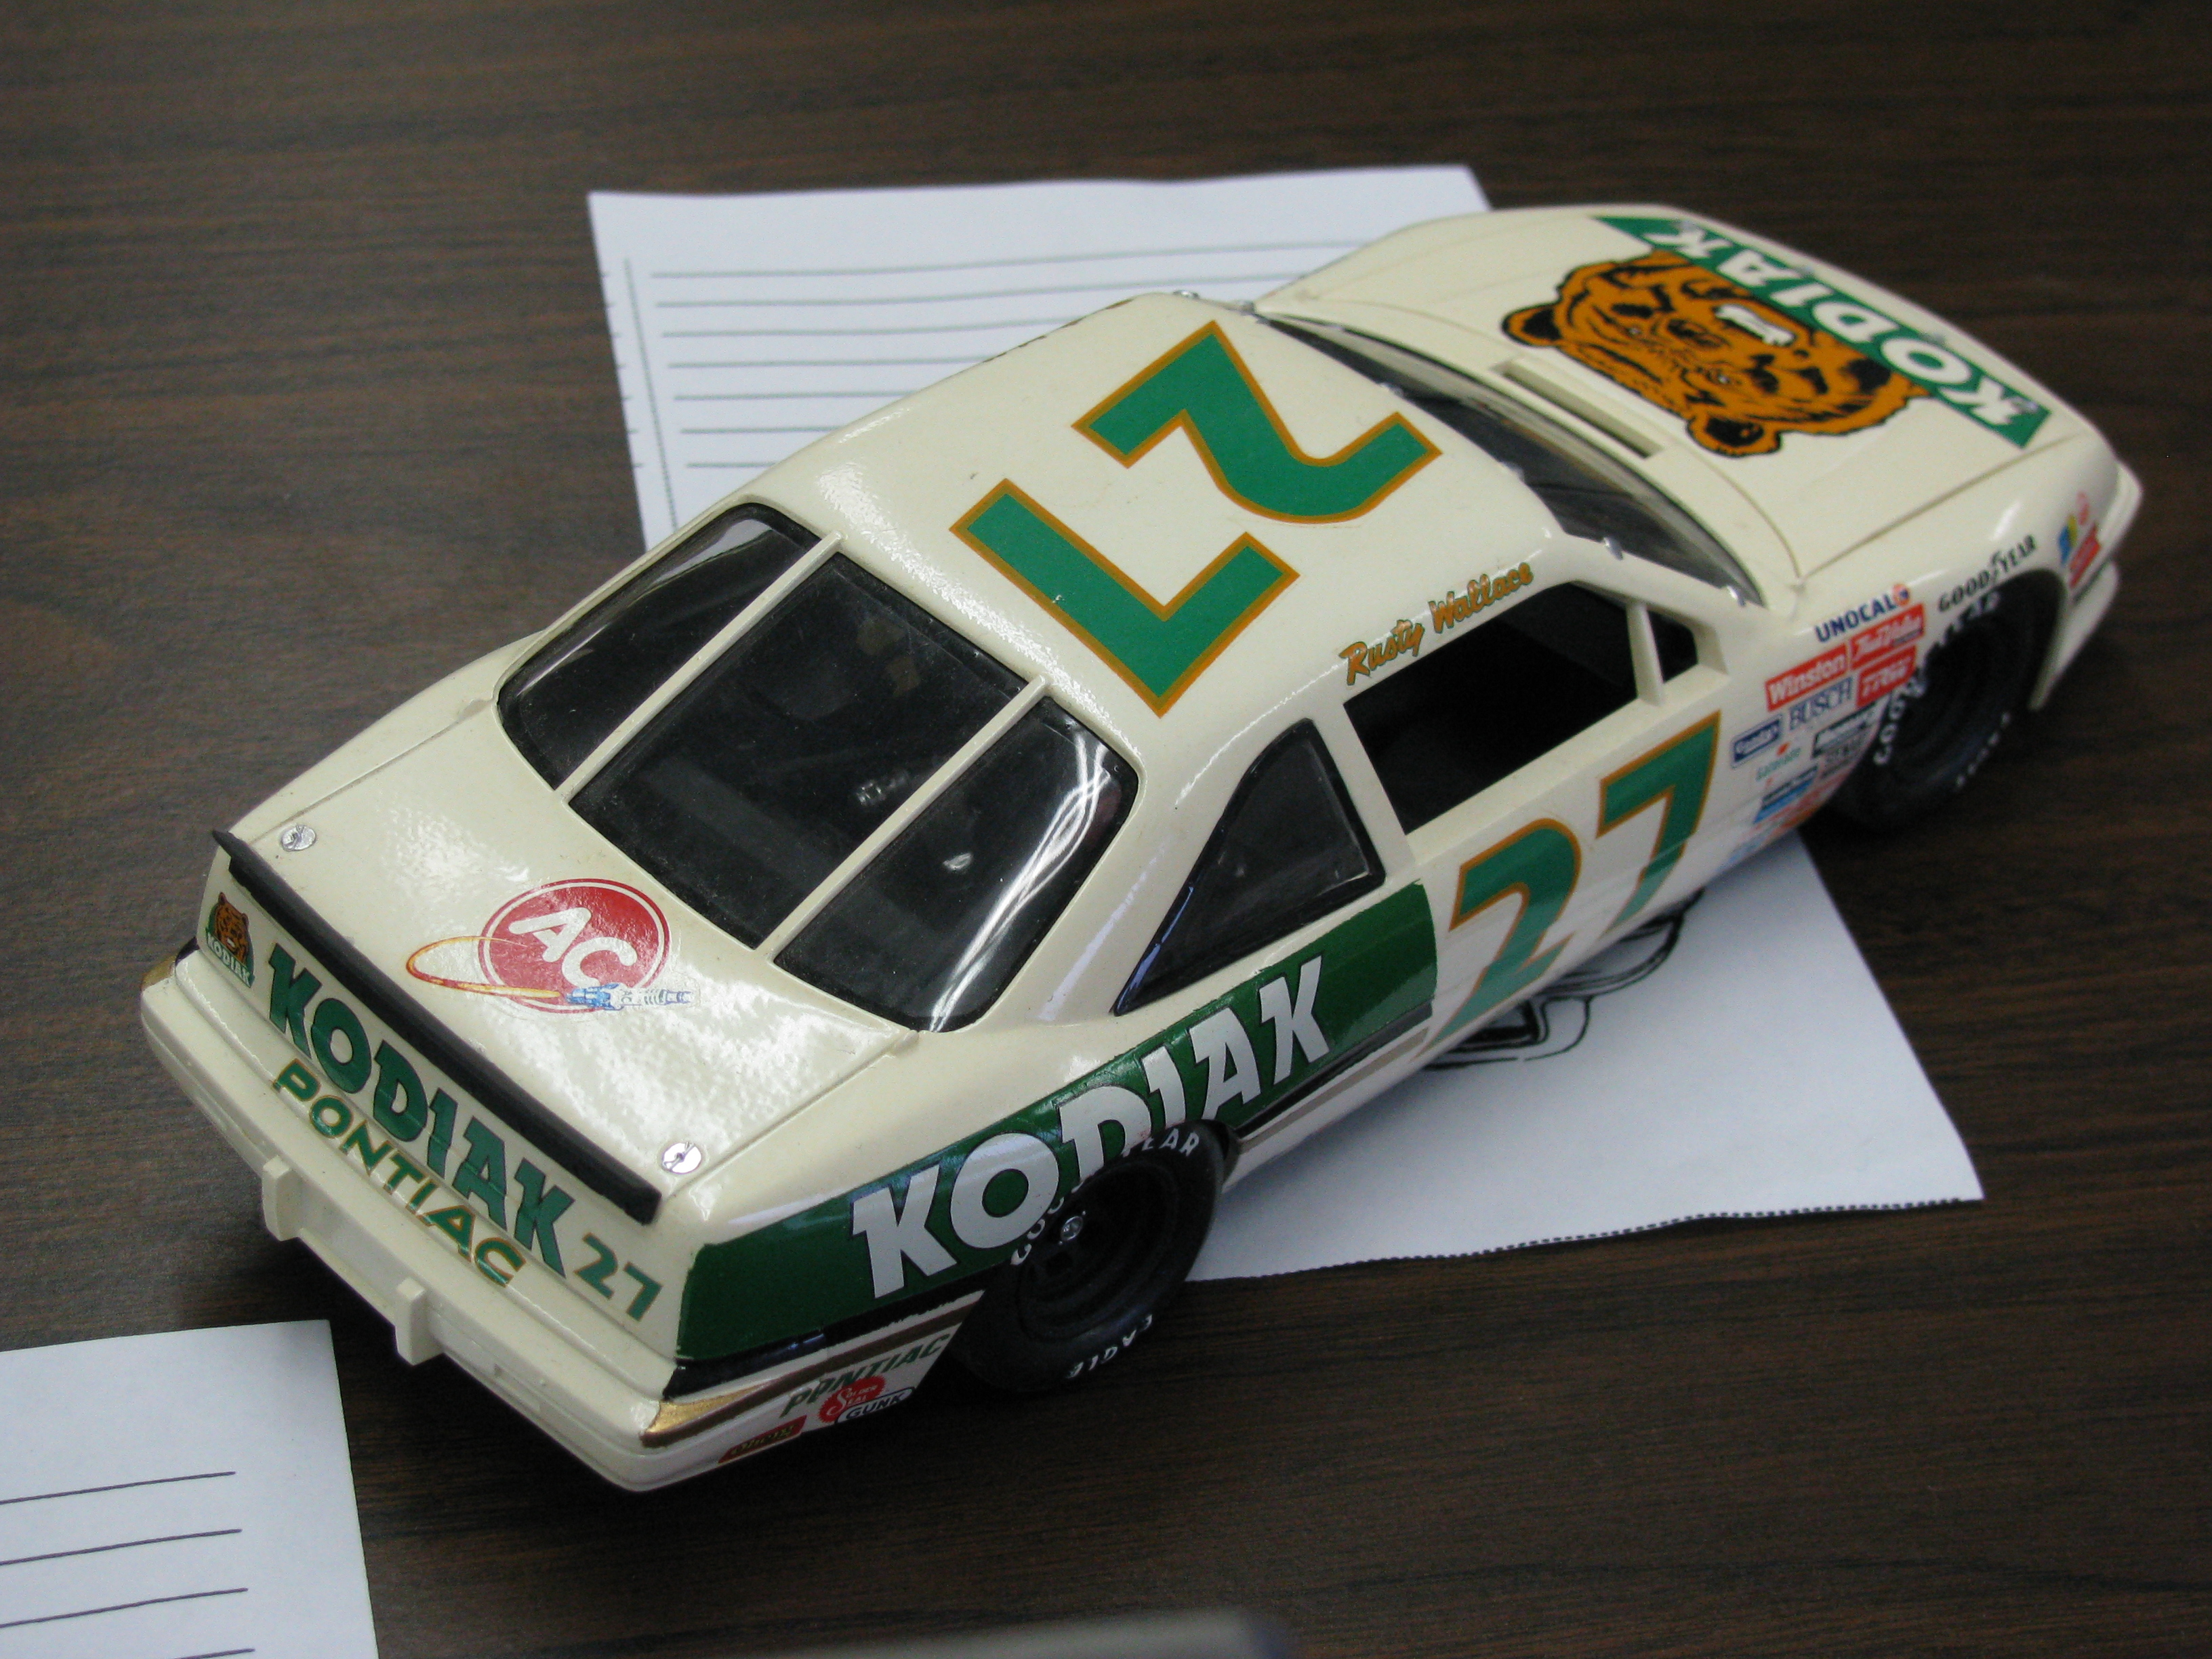 2009 Cedarville Model Car Contest and Swap Meet graphs The